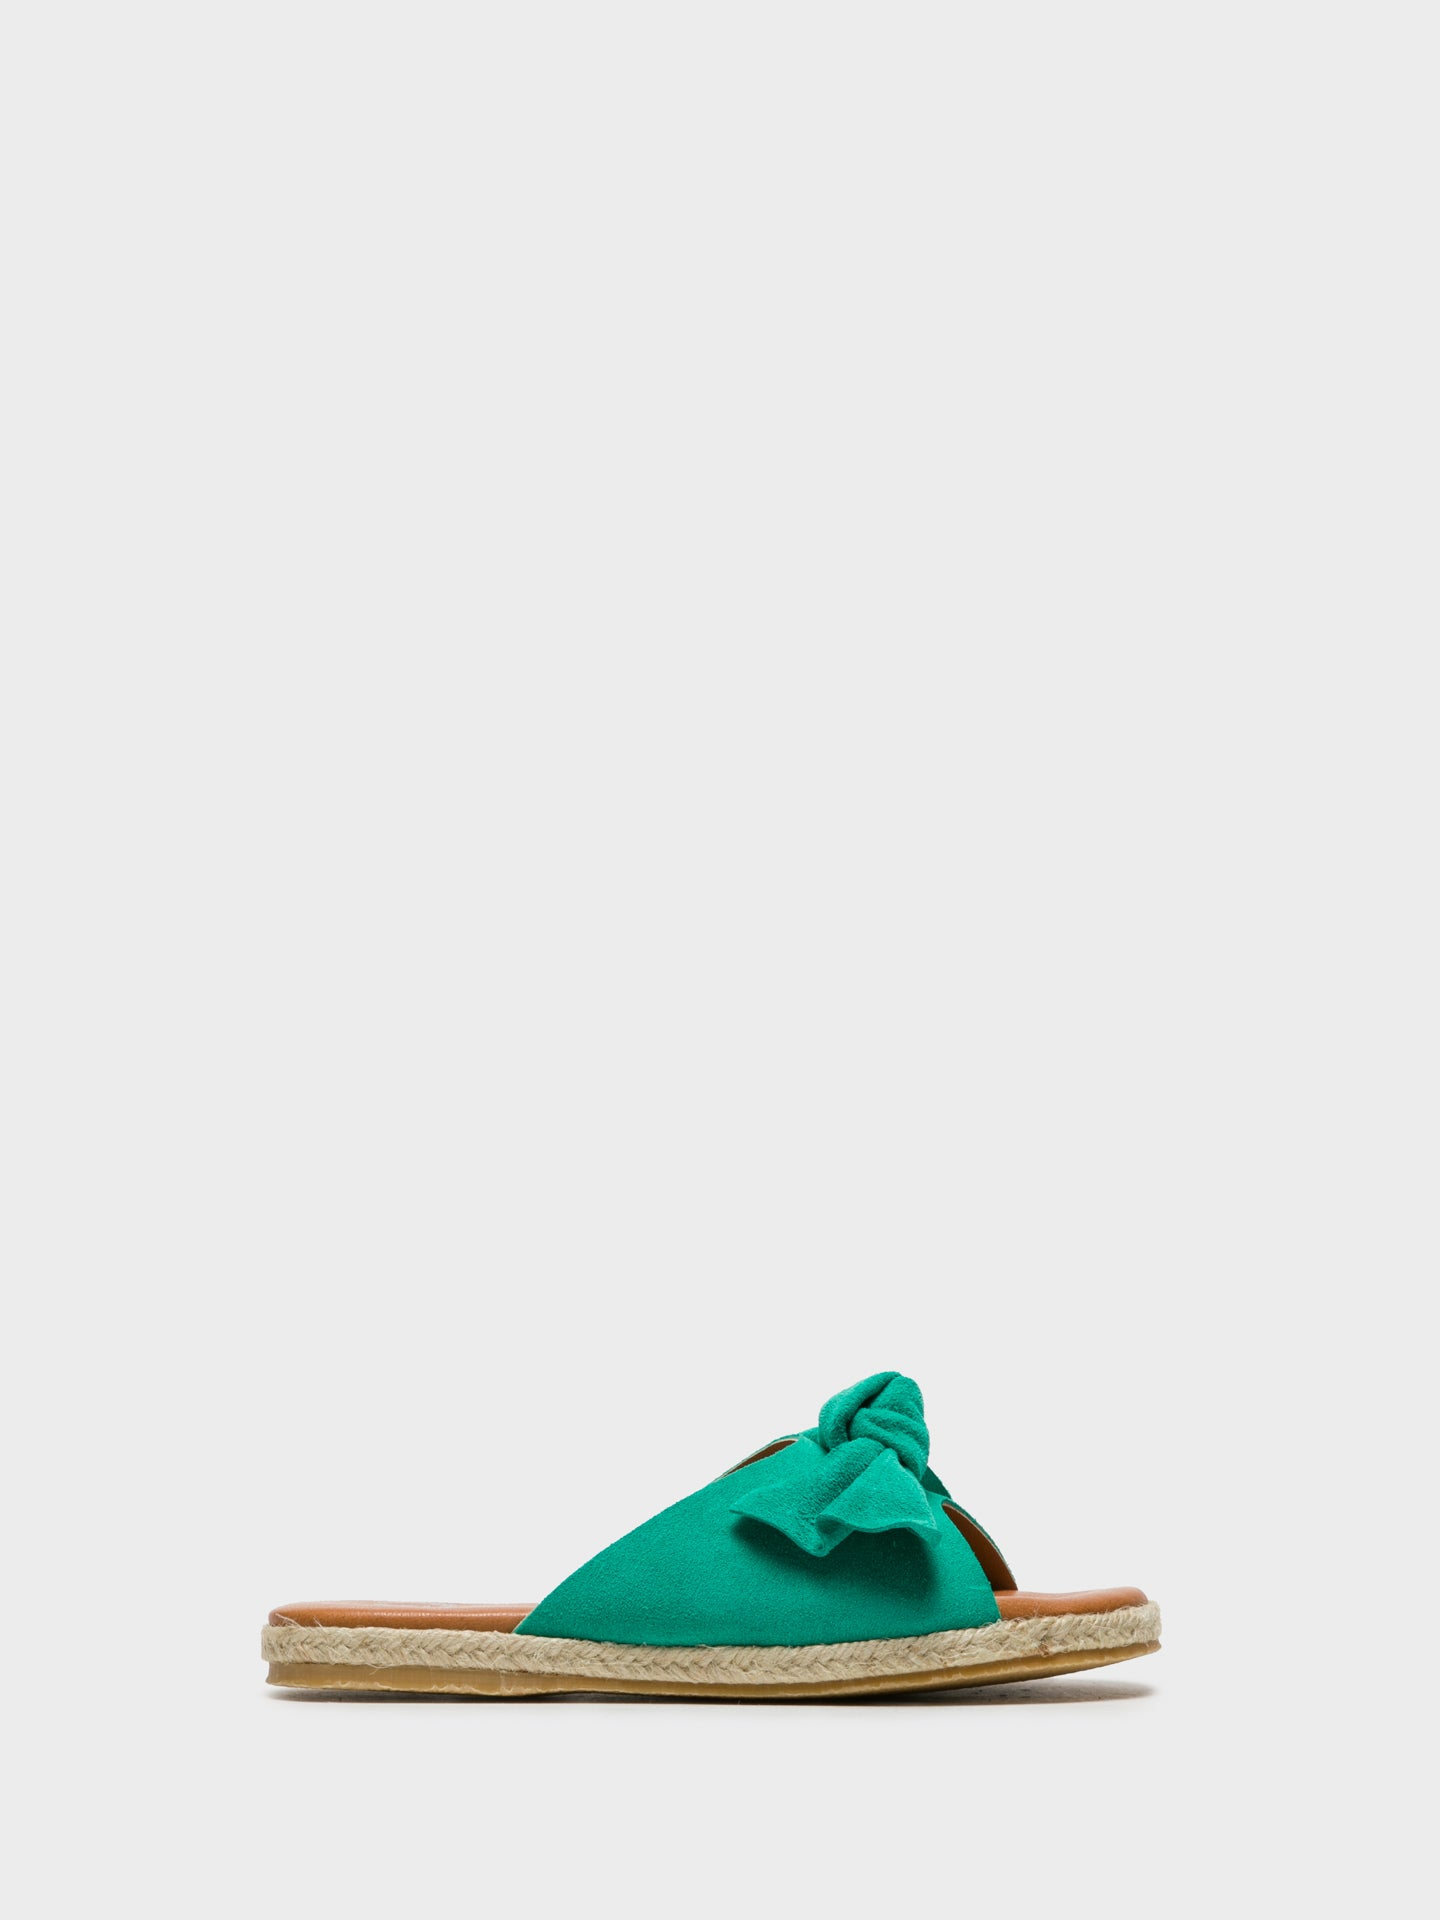 Sotoalto Green Embellished Mules